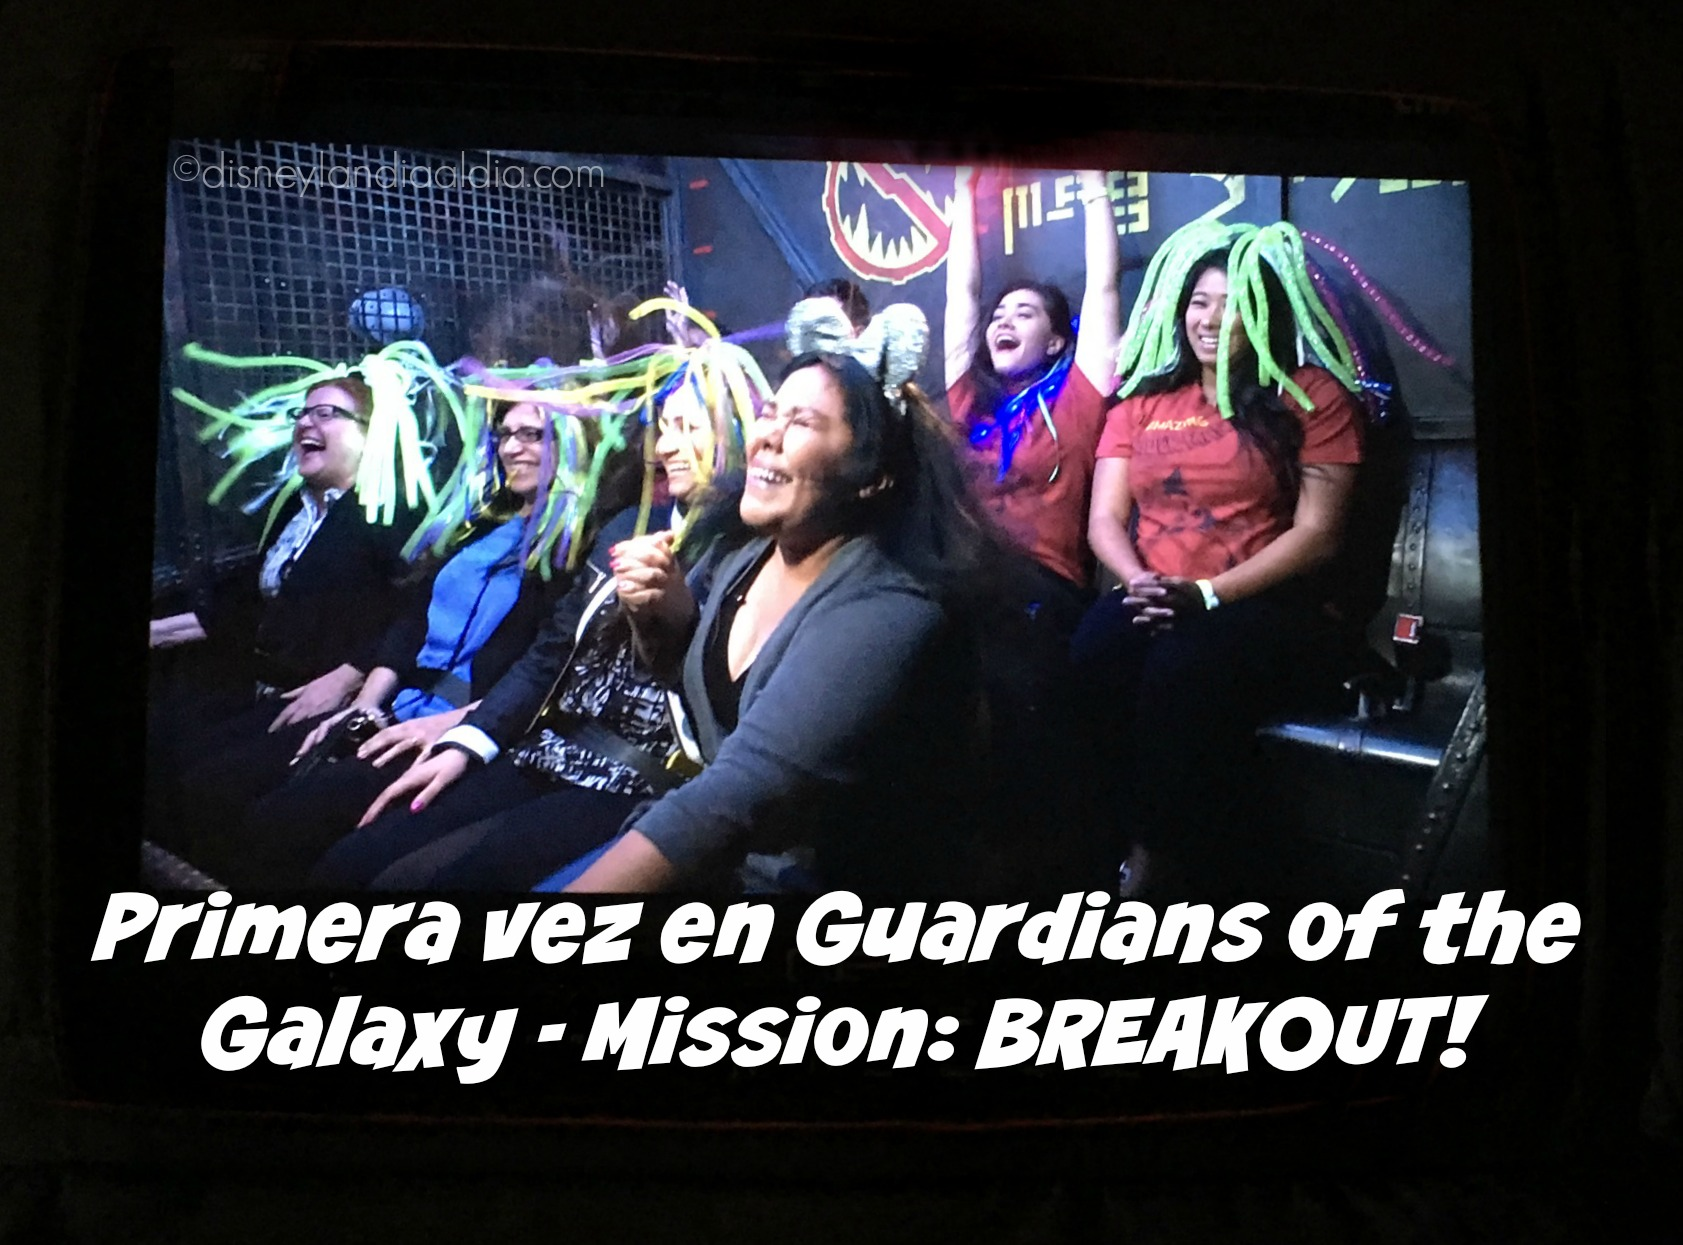 la-primera-vez-en-guardians-galaxy-mission-breakout